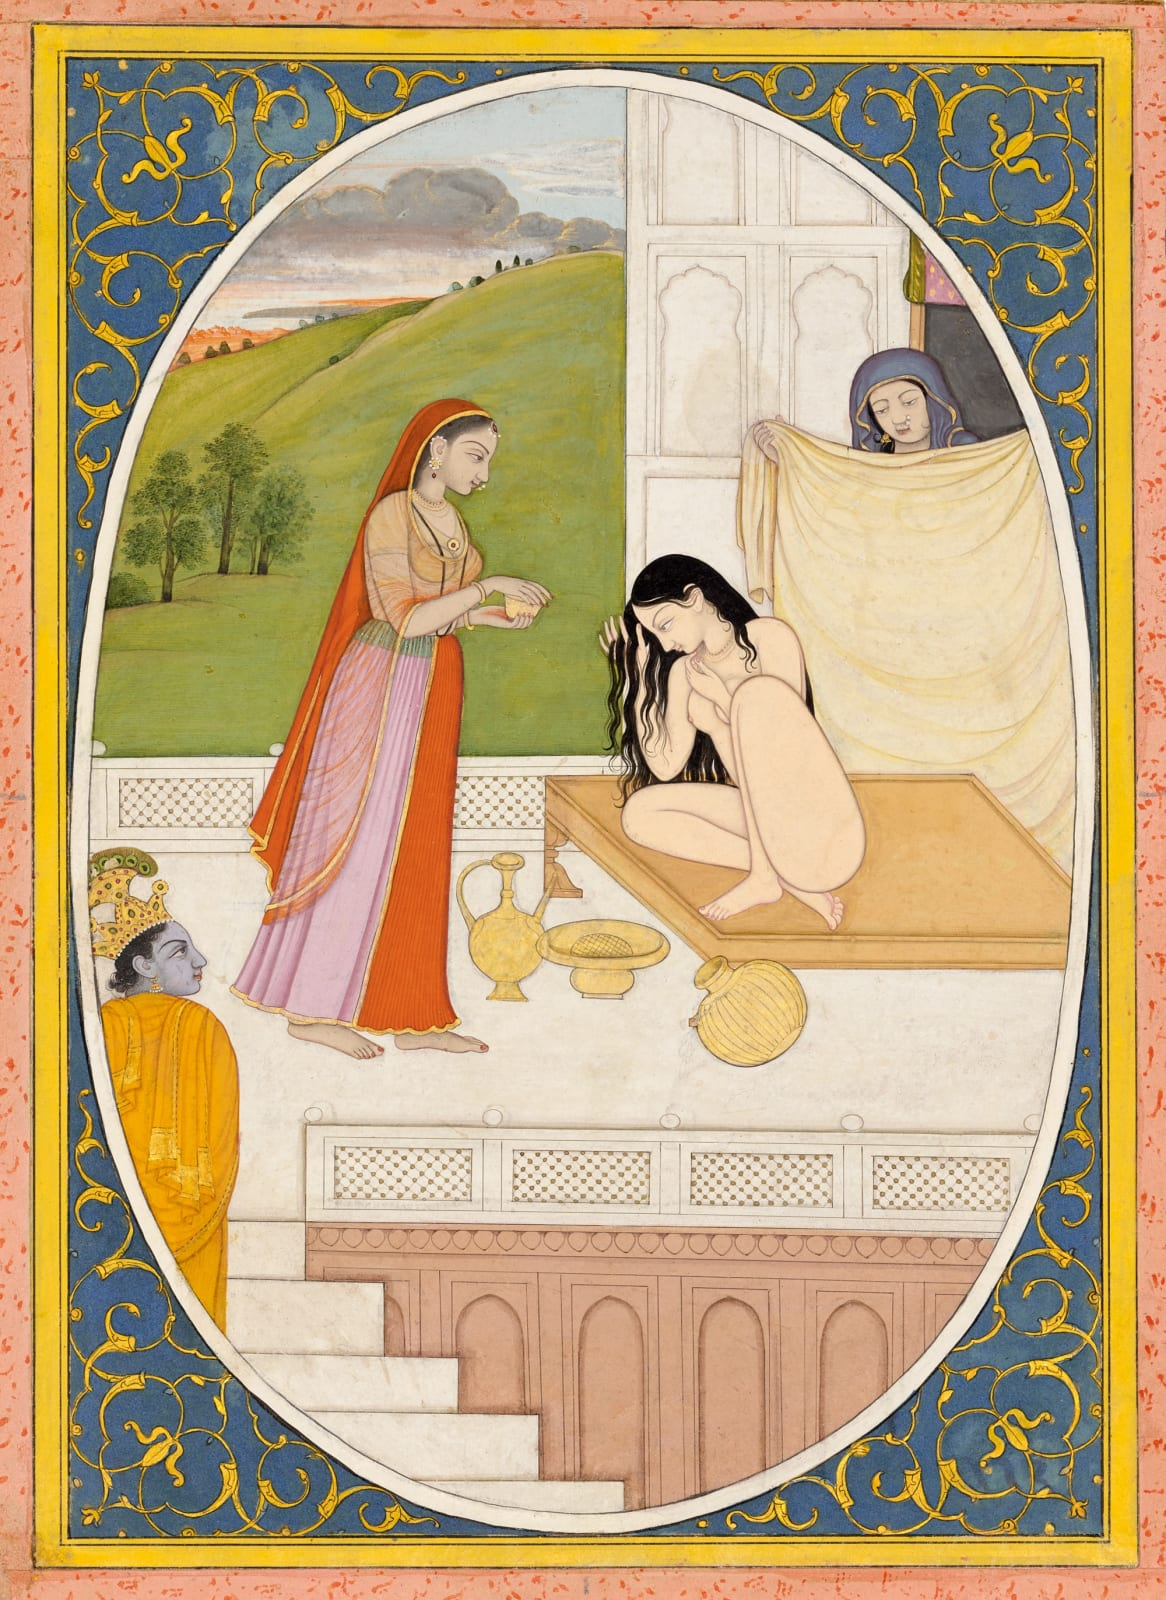 Krishna observes Radha's Toilette - Page from the 'Tehri-Garhwal' Satsai of Bihari, Probably painted by the Guler artist Fattu at Kangra, c. 1785